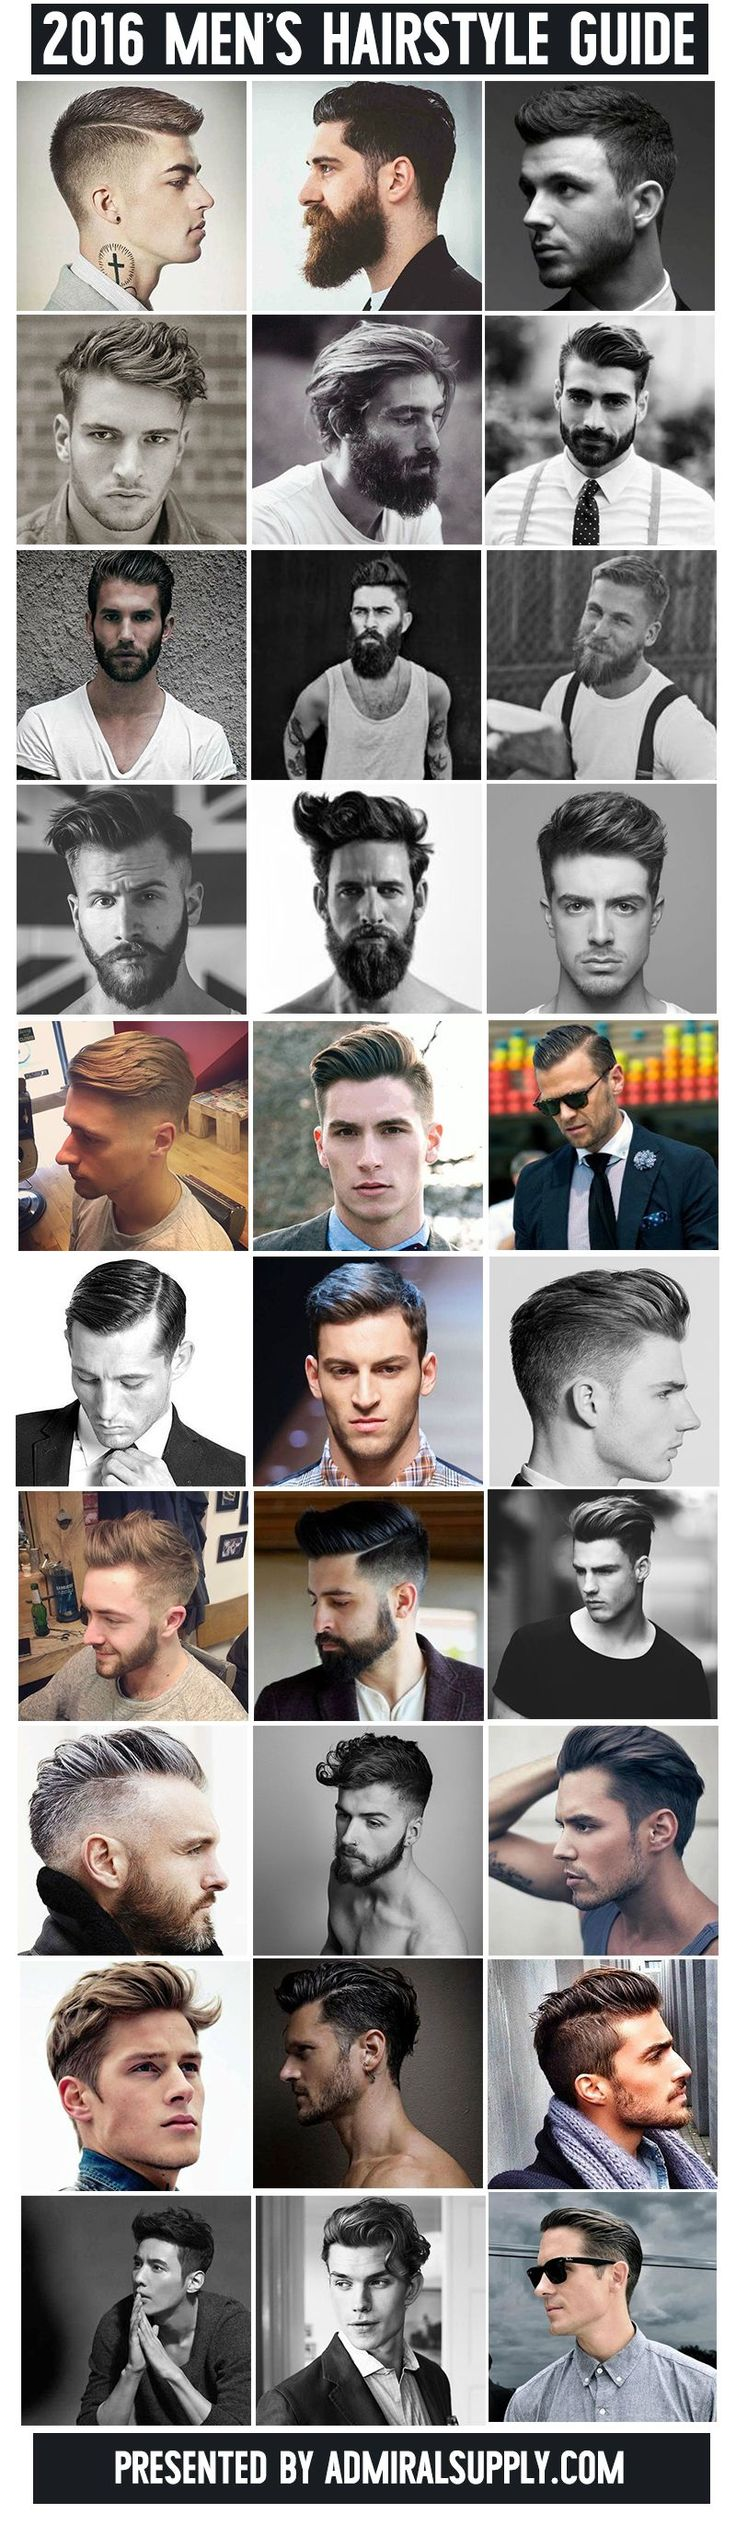 2016 Classic Men's Hairstyle Guide...